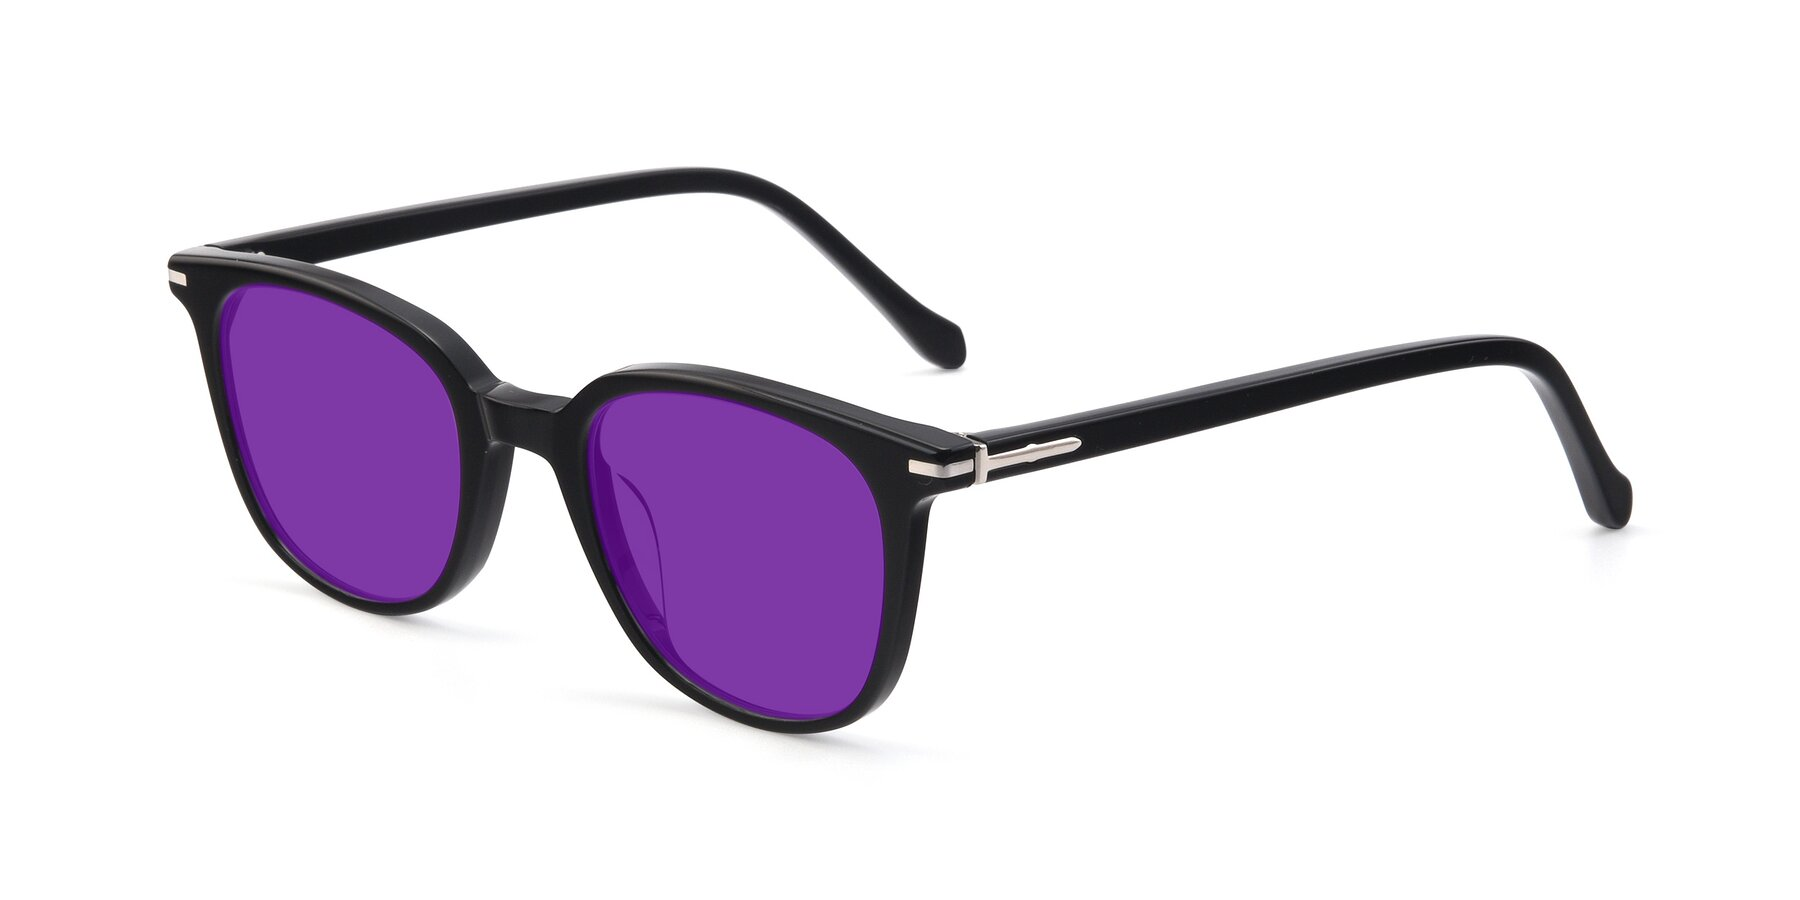 Angle of 17562 in Black with Purple Tinted Lenses